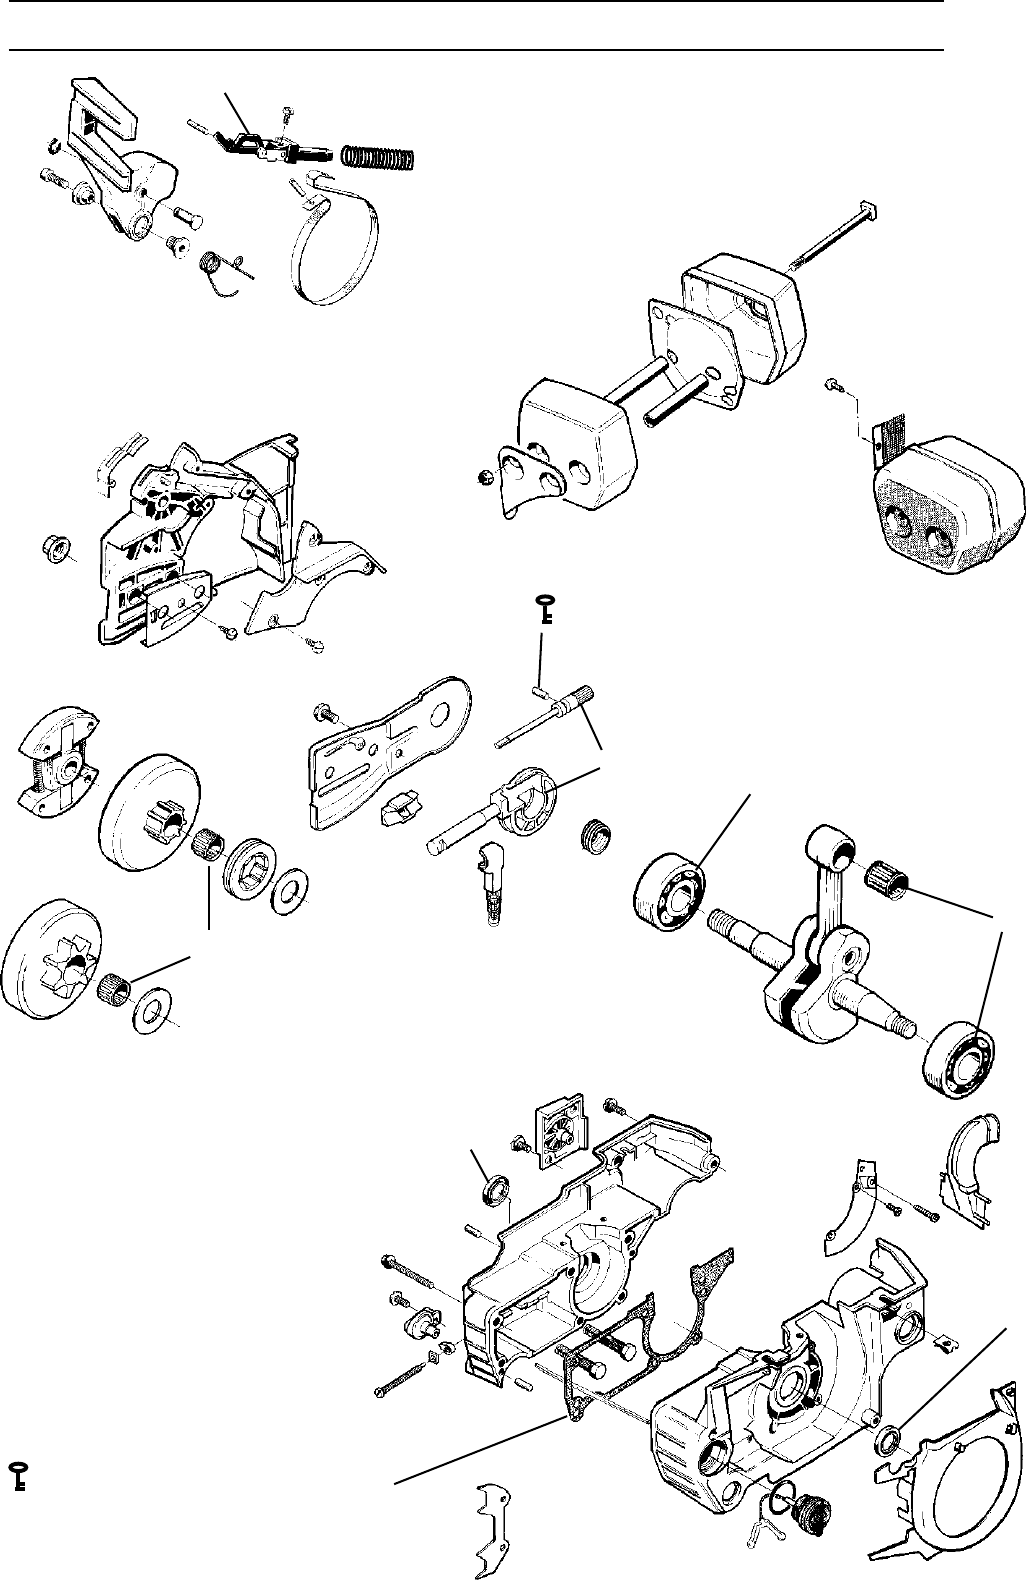 Page 26 of Husqvarna Chainsaw 1018855-26 User Guide